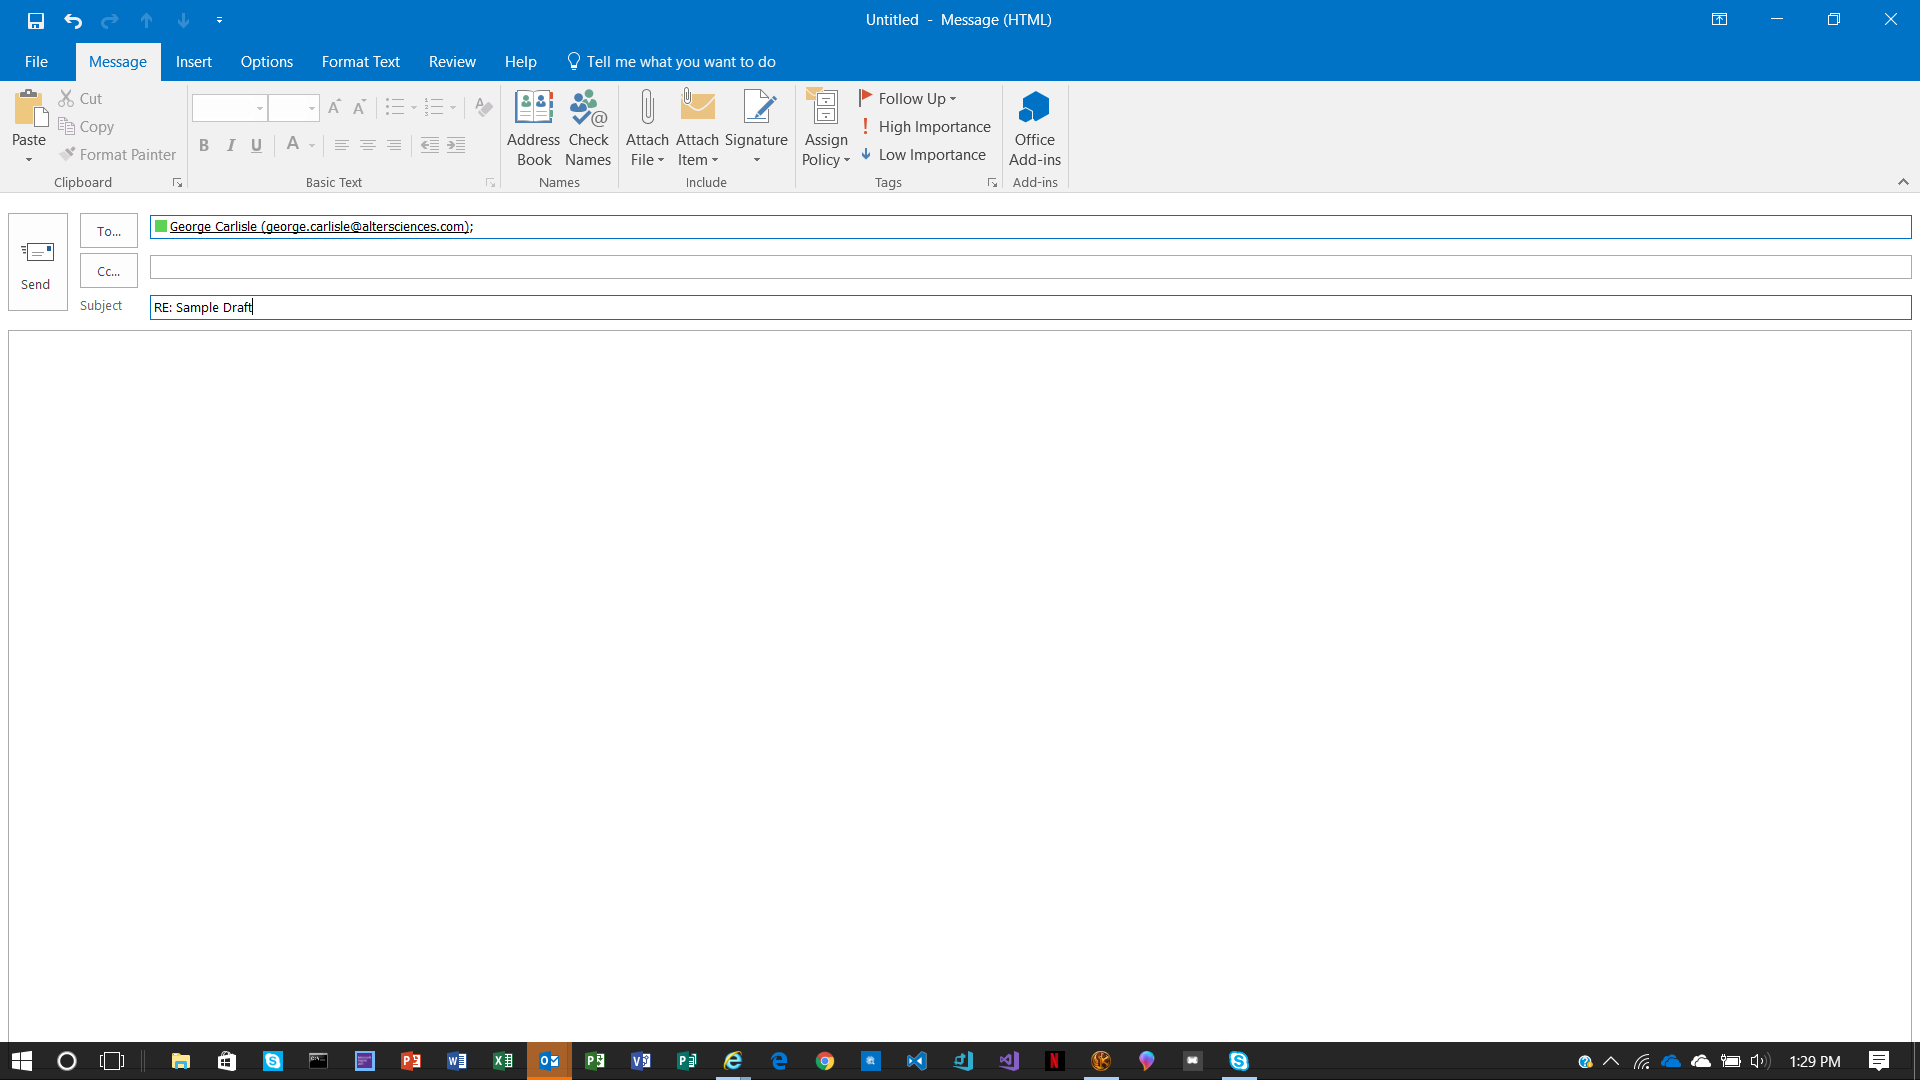 Outlook 2016 will not save drafts